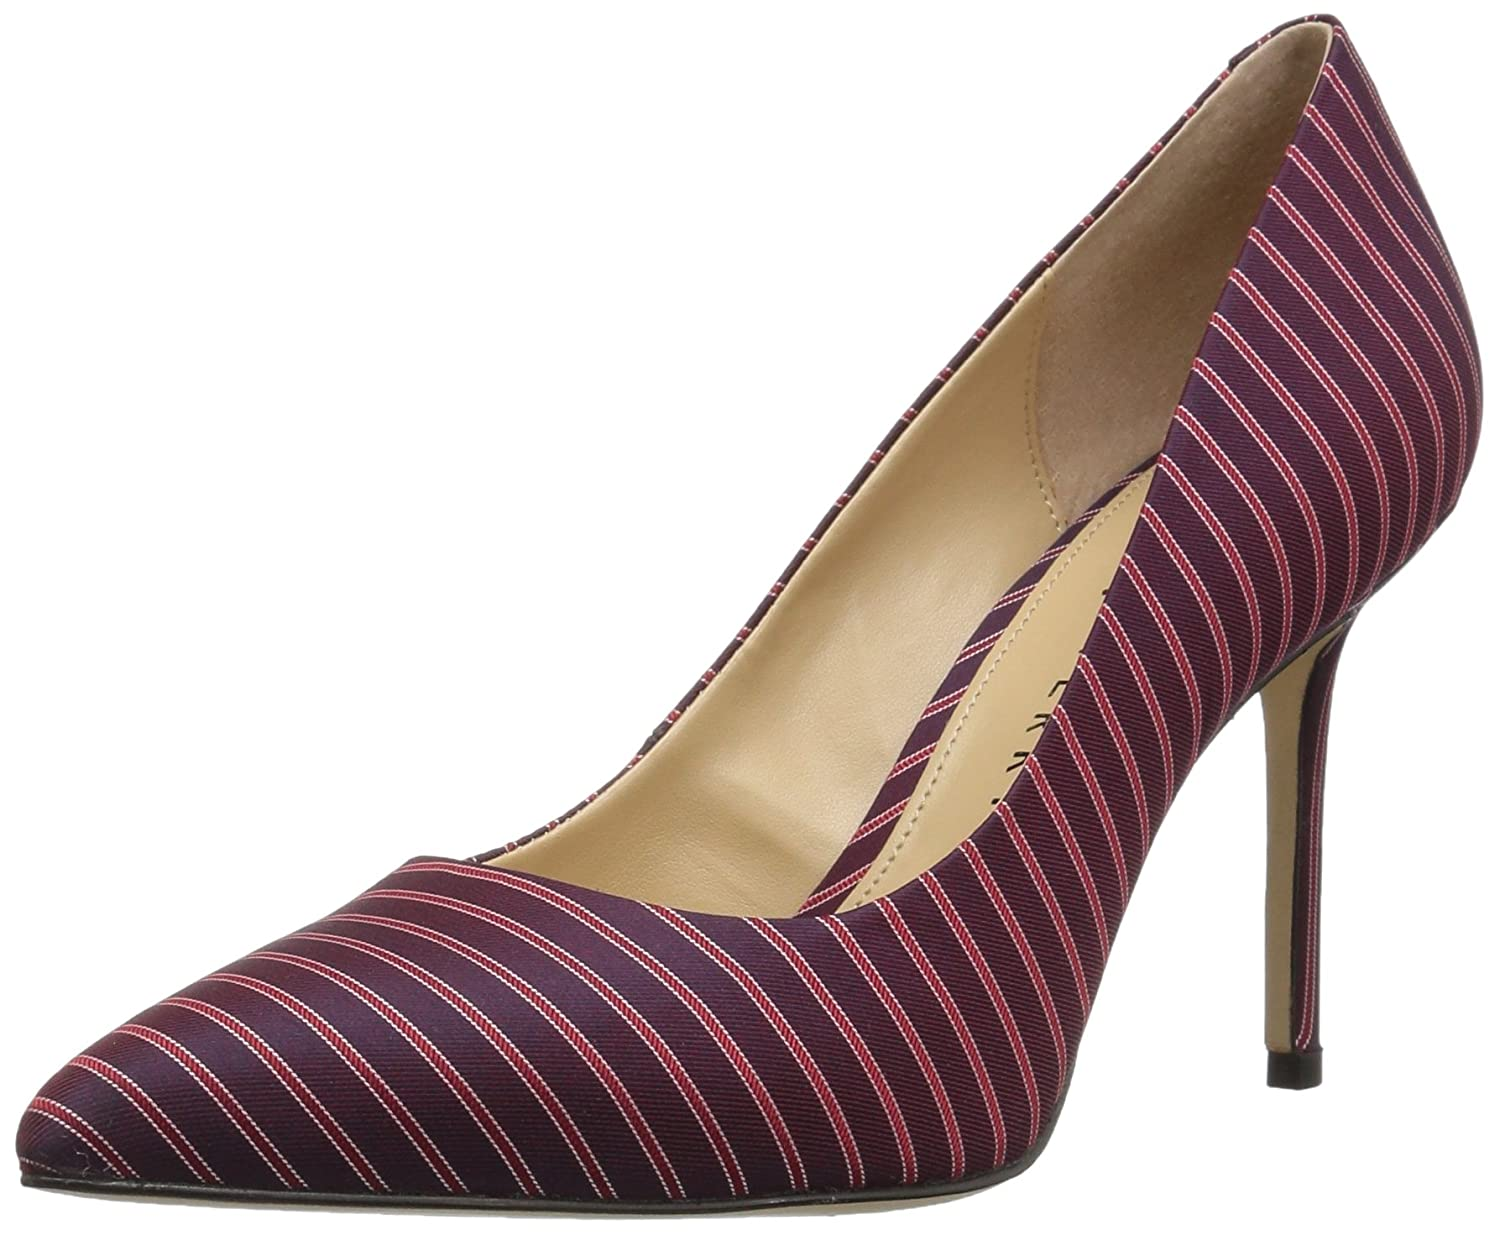 Katy Perry Women's The Sissy Pump B073HCY8J5 10 B(M) US|Mulberry